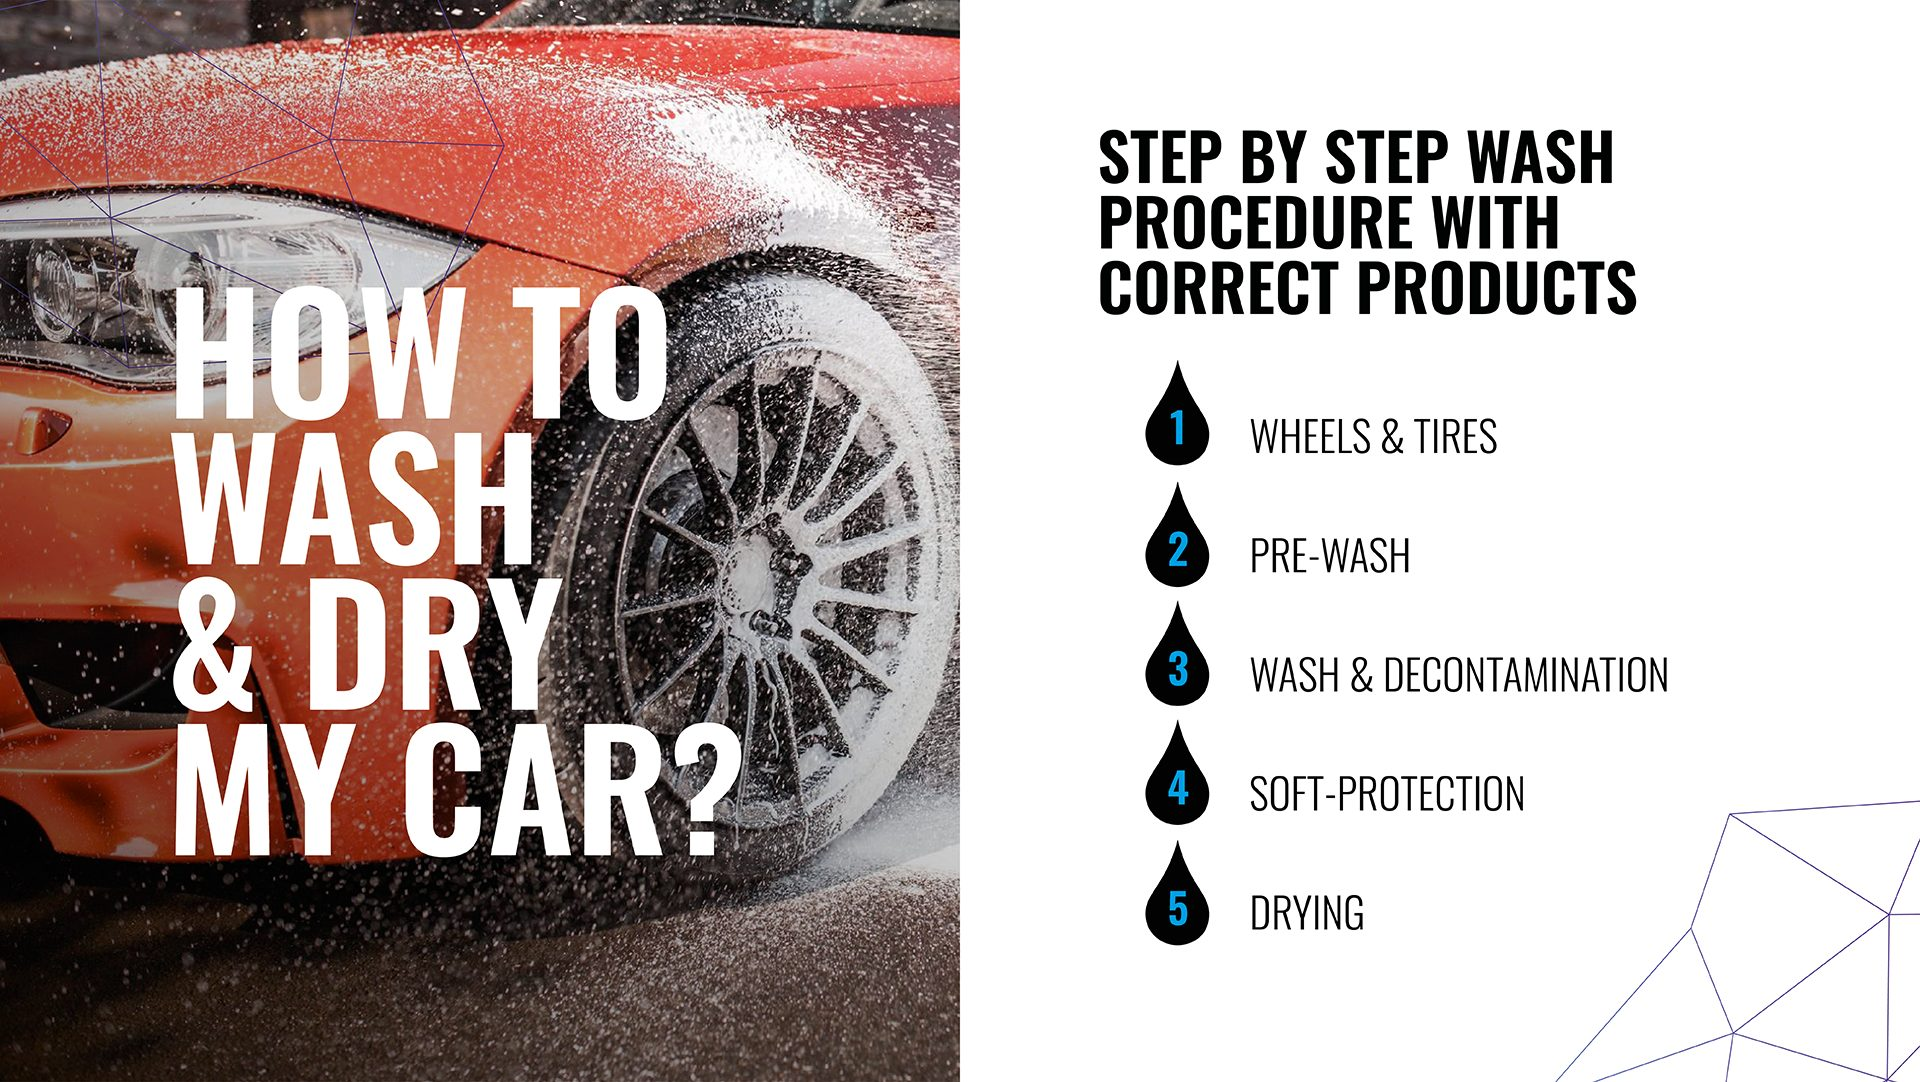 How to wash and dry car - staffordshire car care